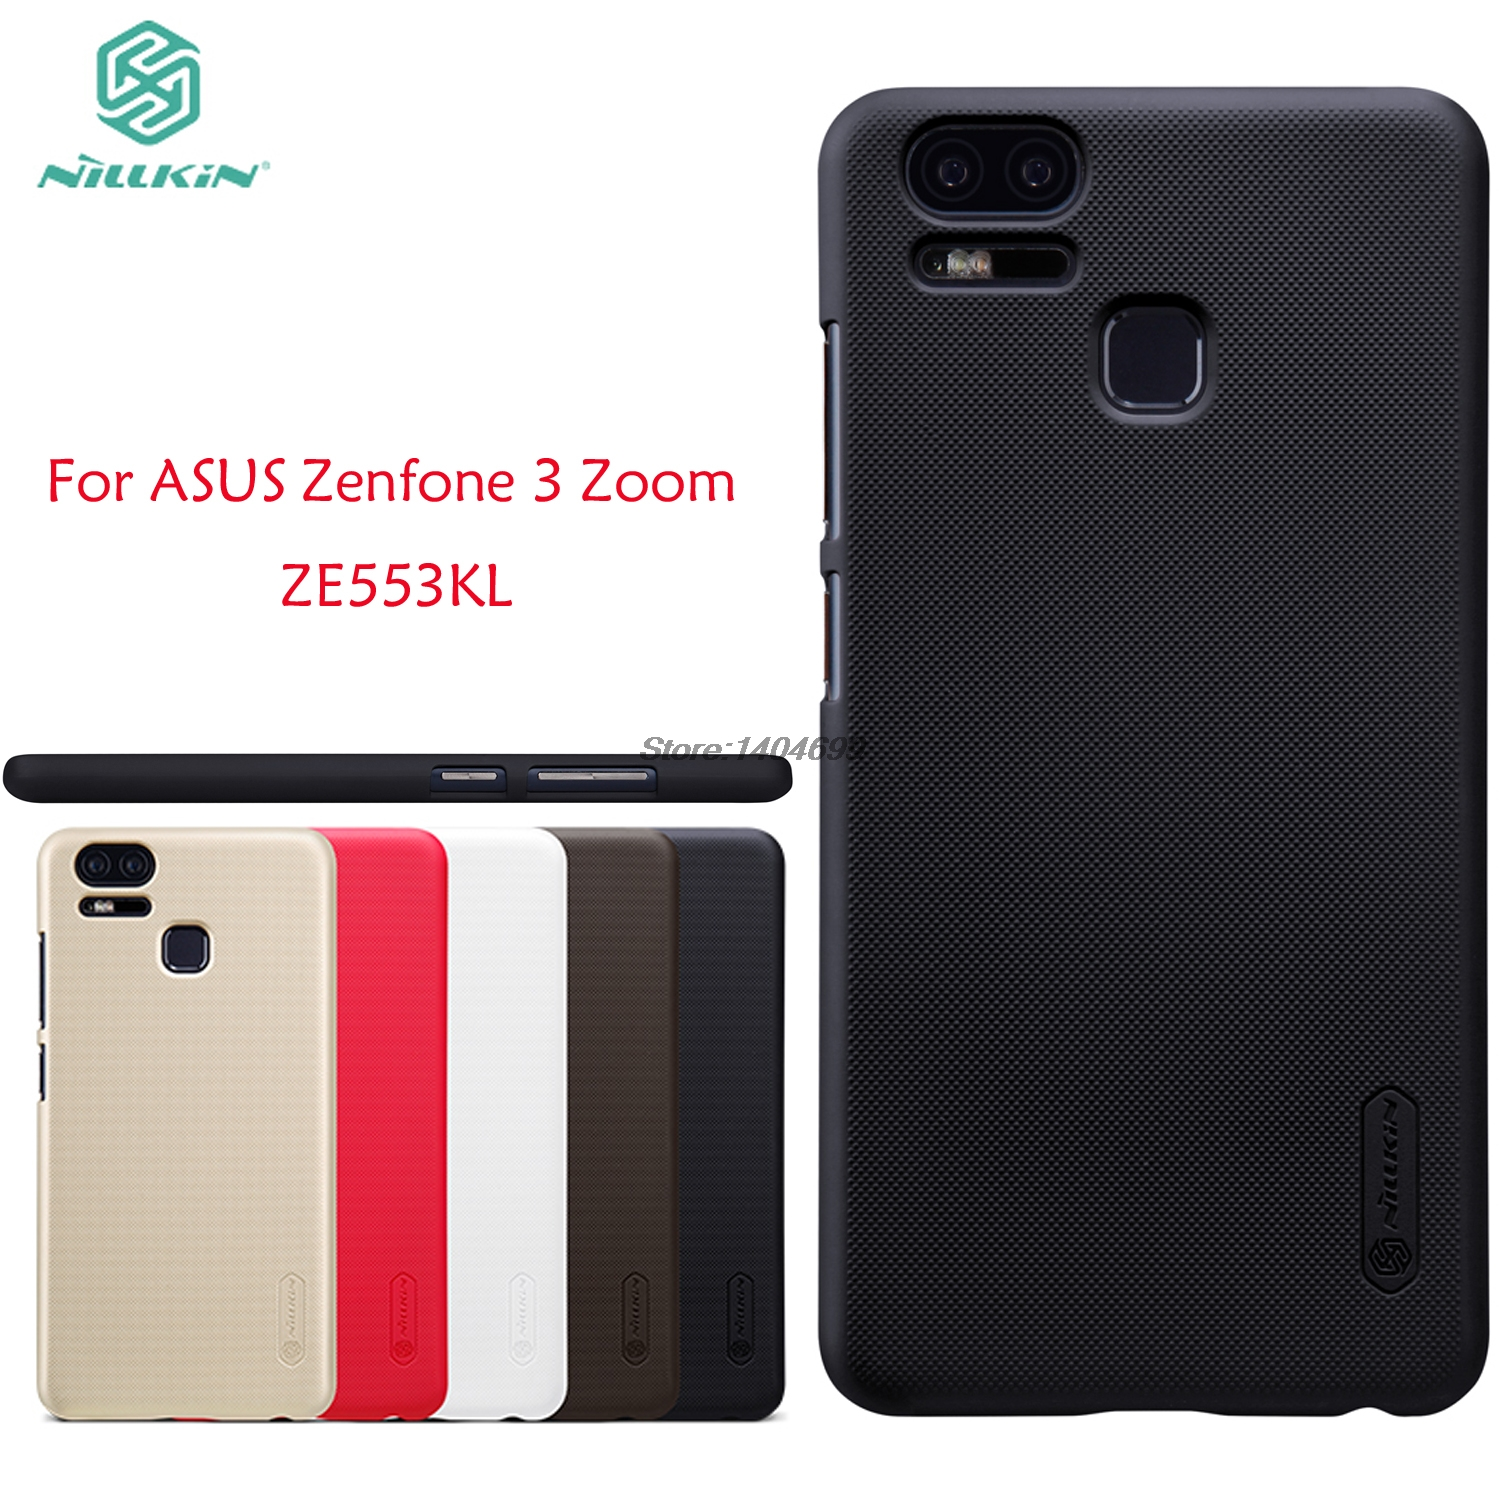 sFor ASUS Zenfone 3 Zoom ZE553KL Case Nillkin Frosted Shield Hard Armor PC Back Cover Case For ZE553KL Gift Screen Protector